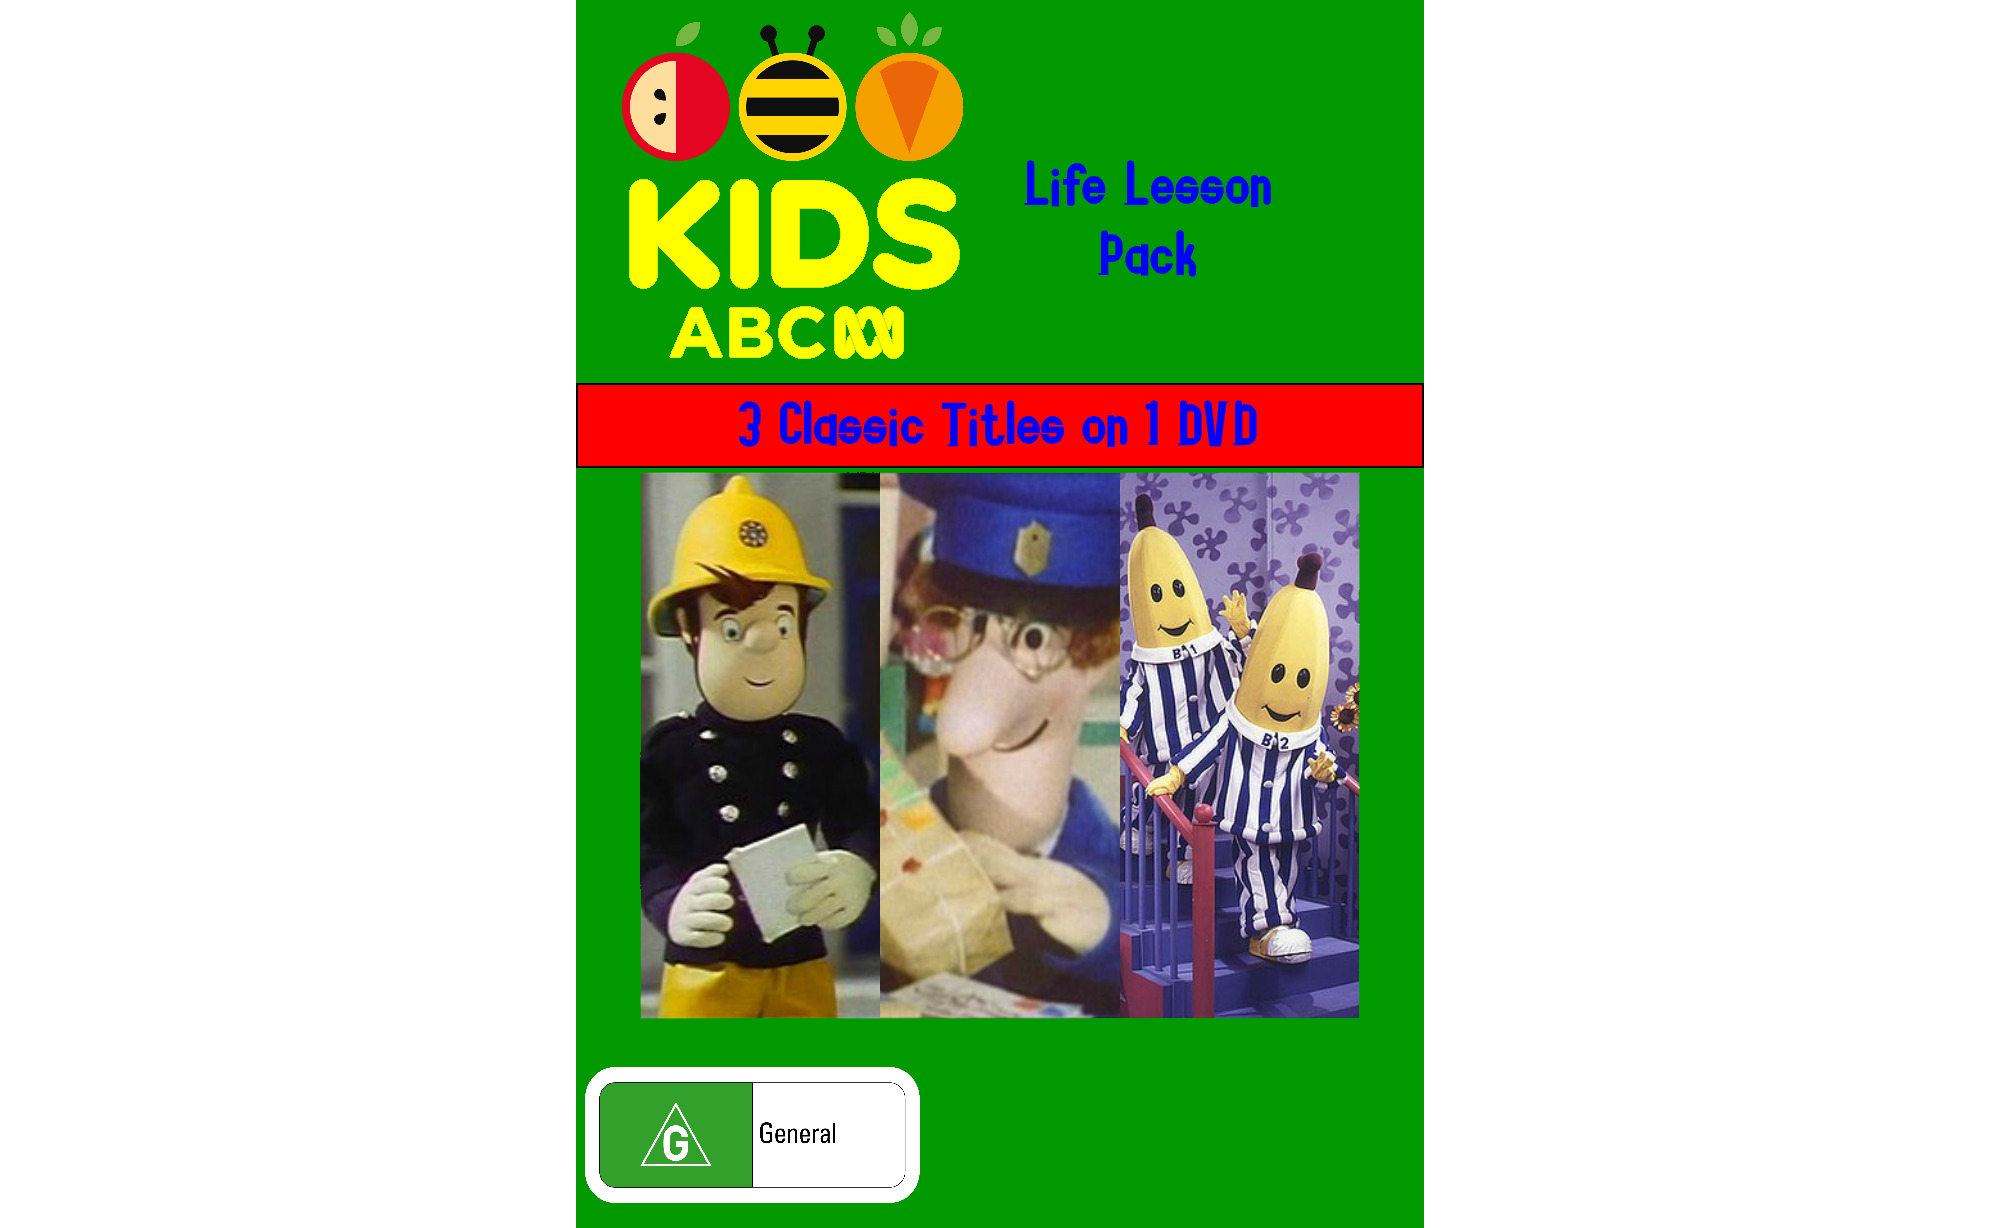 ABC For Kids Life Lesson Pack